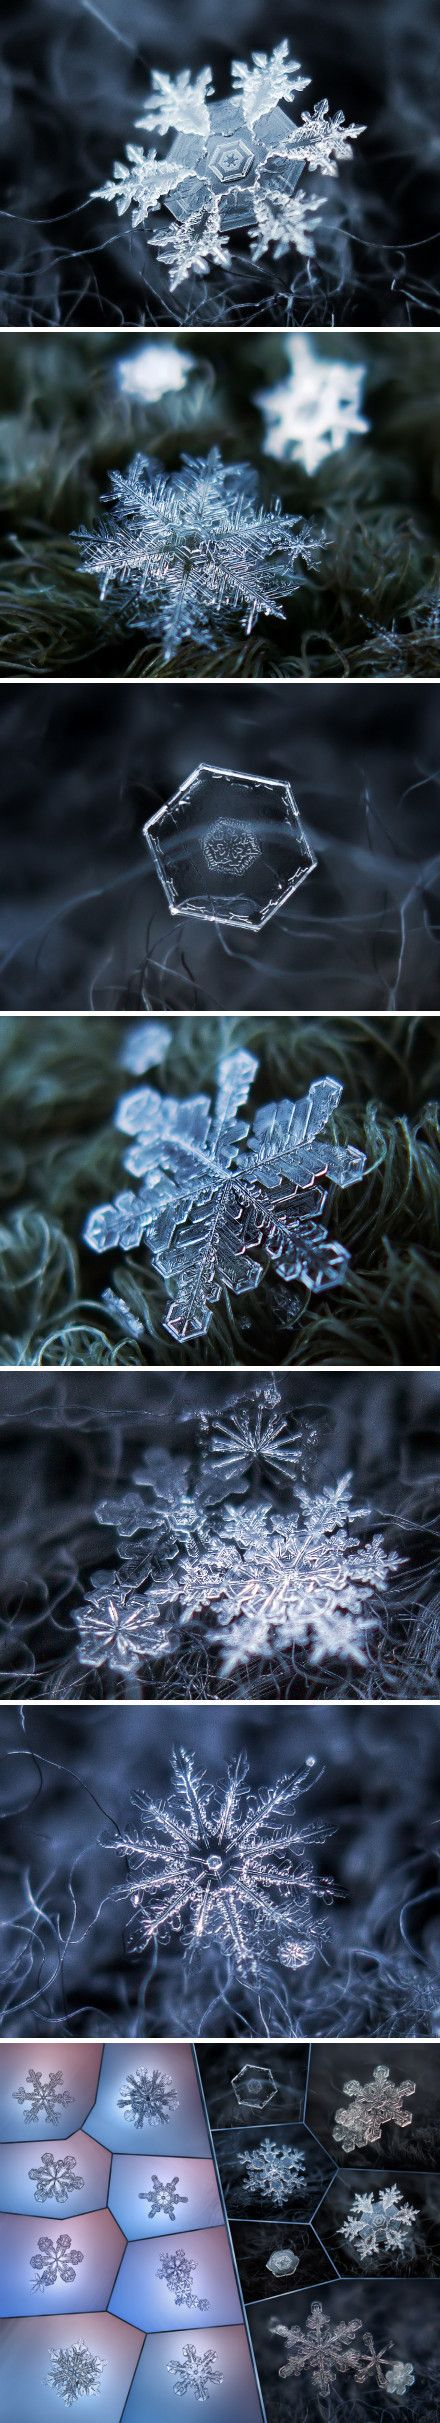 stunning snowflake macro photo by Russian Alexey Kljatov  cc @john_frankel http://www.demilked.com/macro-snowflakes-diy-camera-alexey-kljatov/